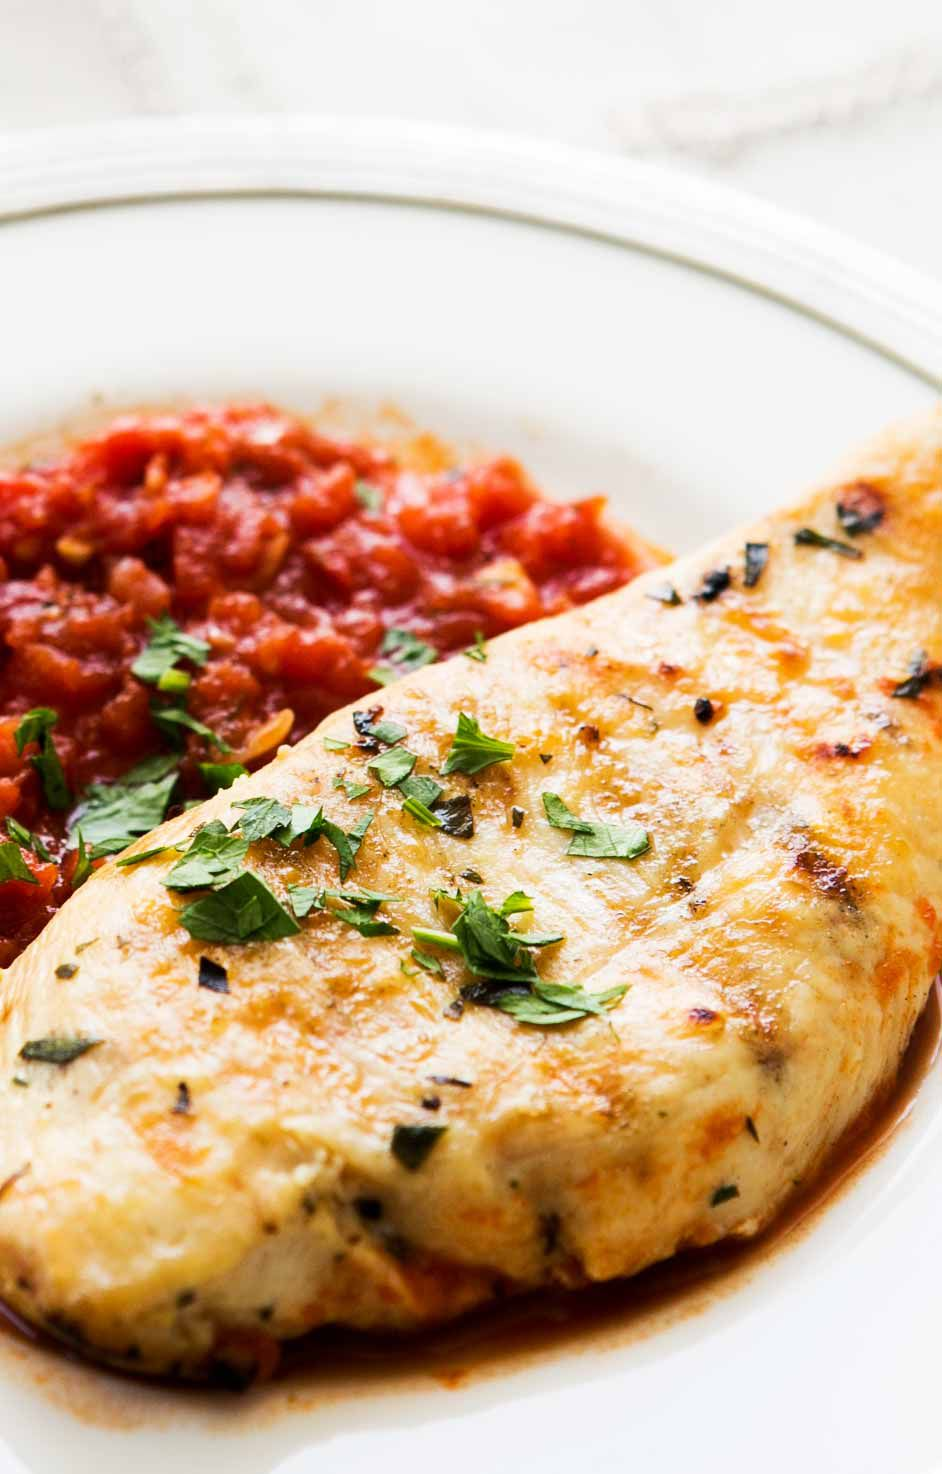 Grilled Chicken Tarragon with Tomato Sauce